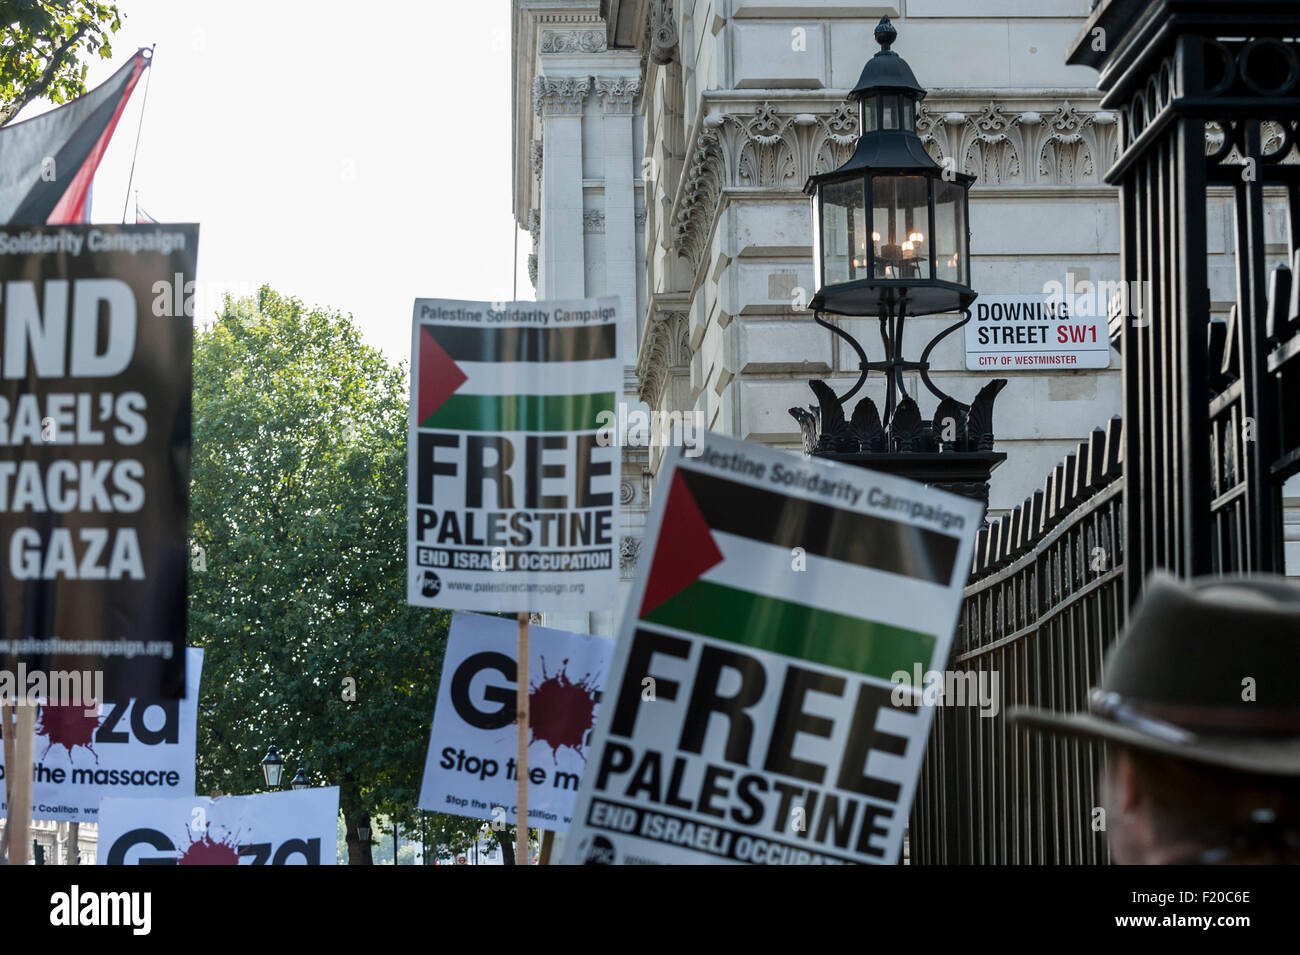 London, UK. 9 September 2015.  Pro-Palestine and pro-Israel demonstrators gather opposite each other outside Downing - Stock Image